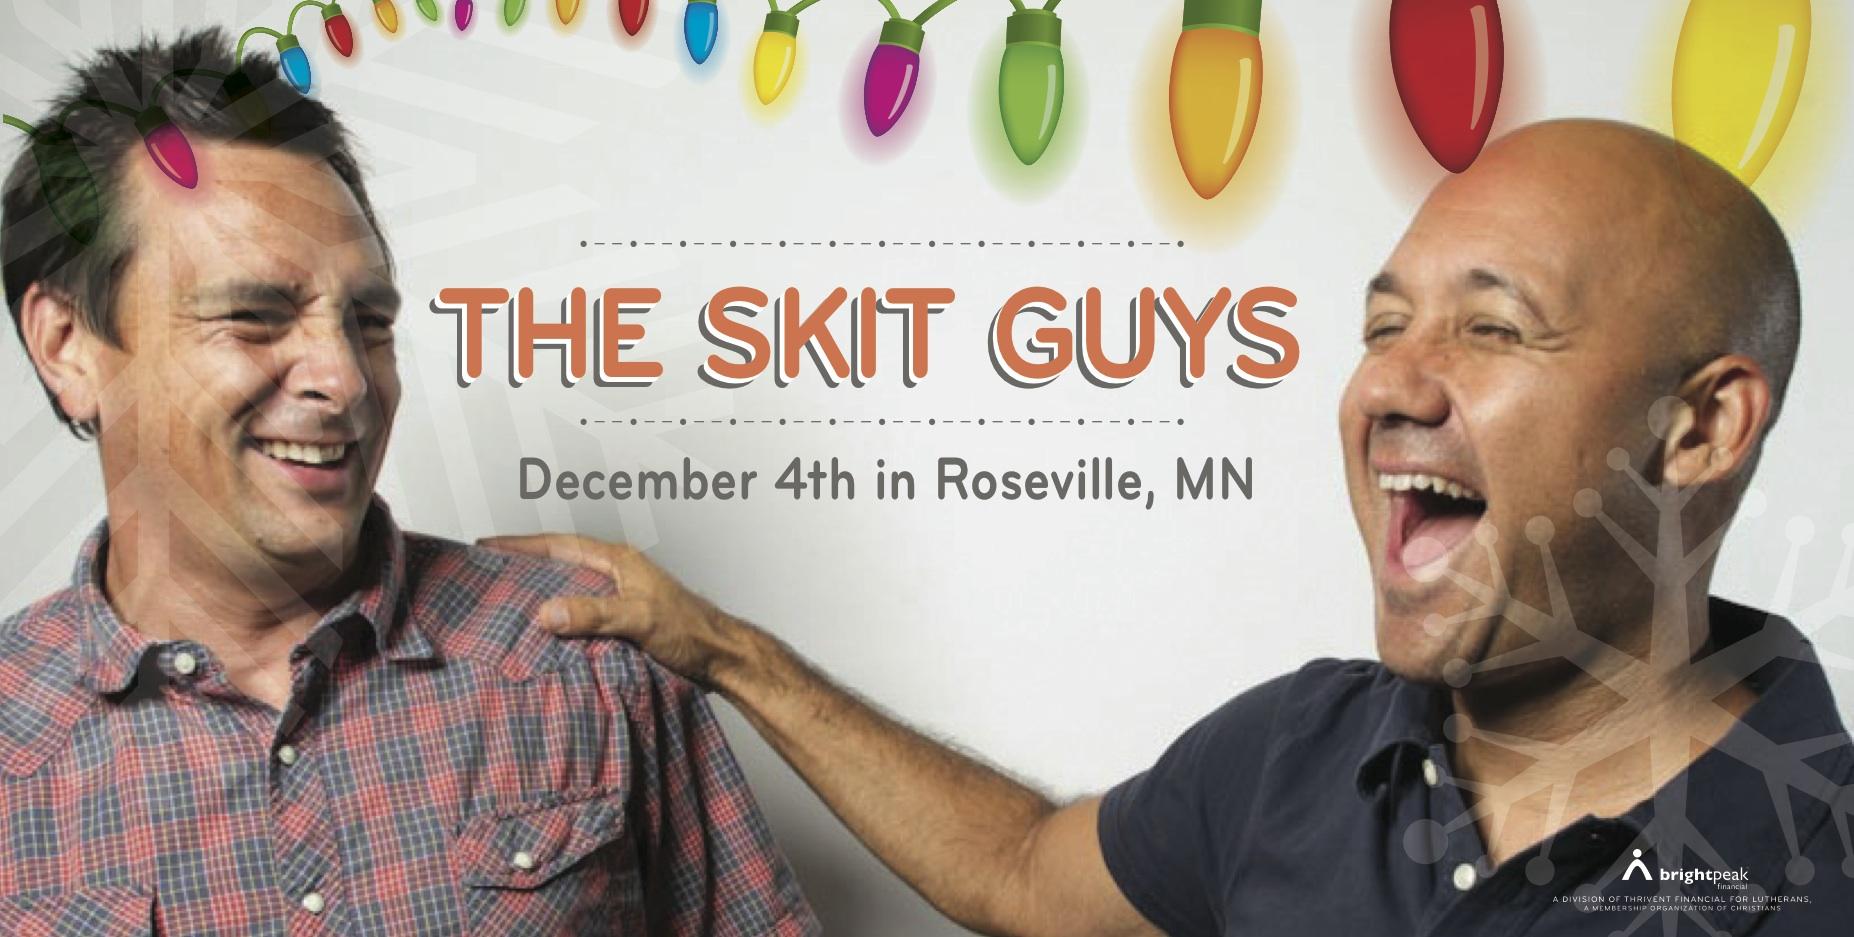 Family Night Out: The Skit Guys